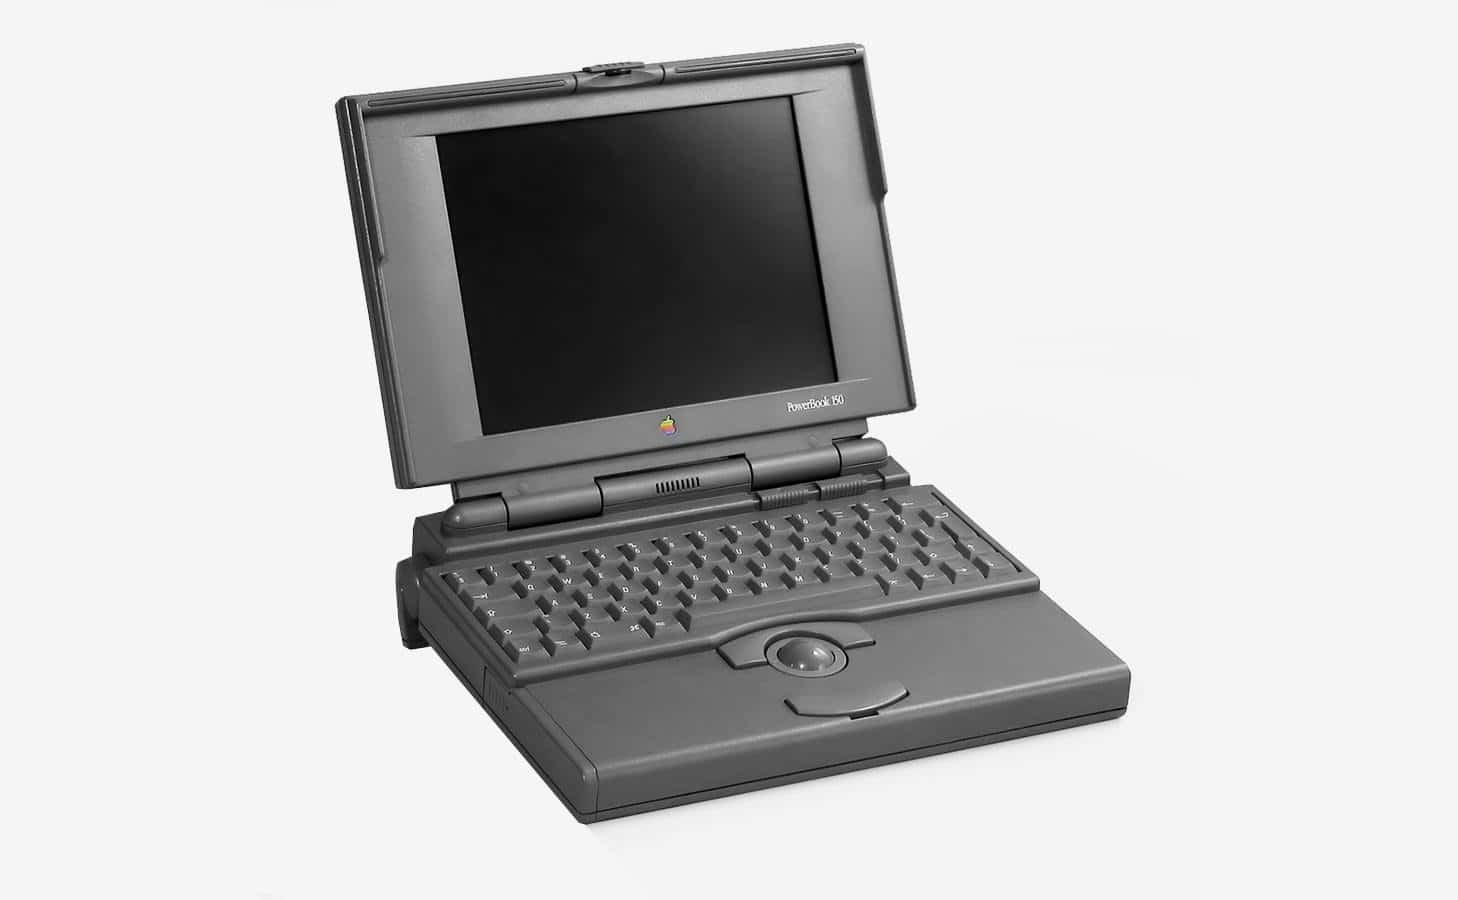 Altes Apple-Notebook - Wikipedia